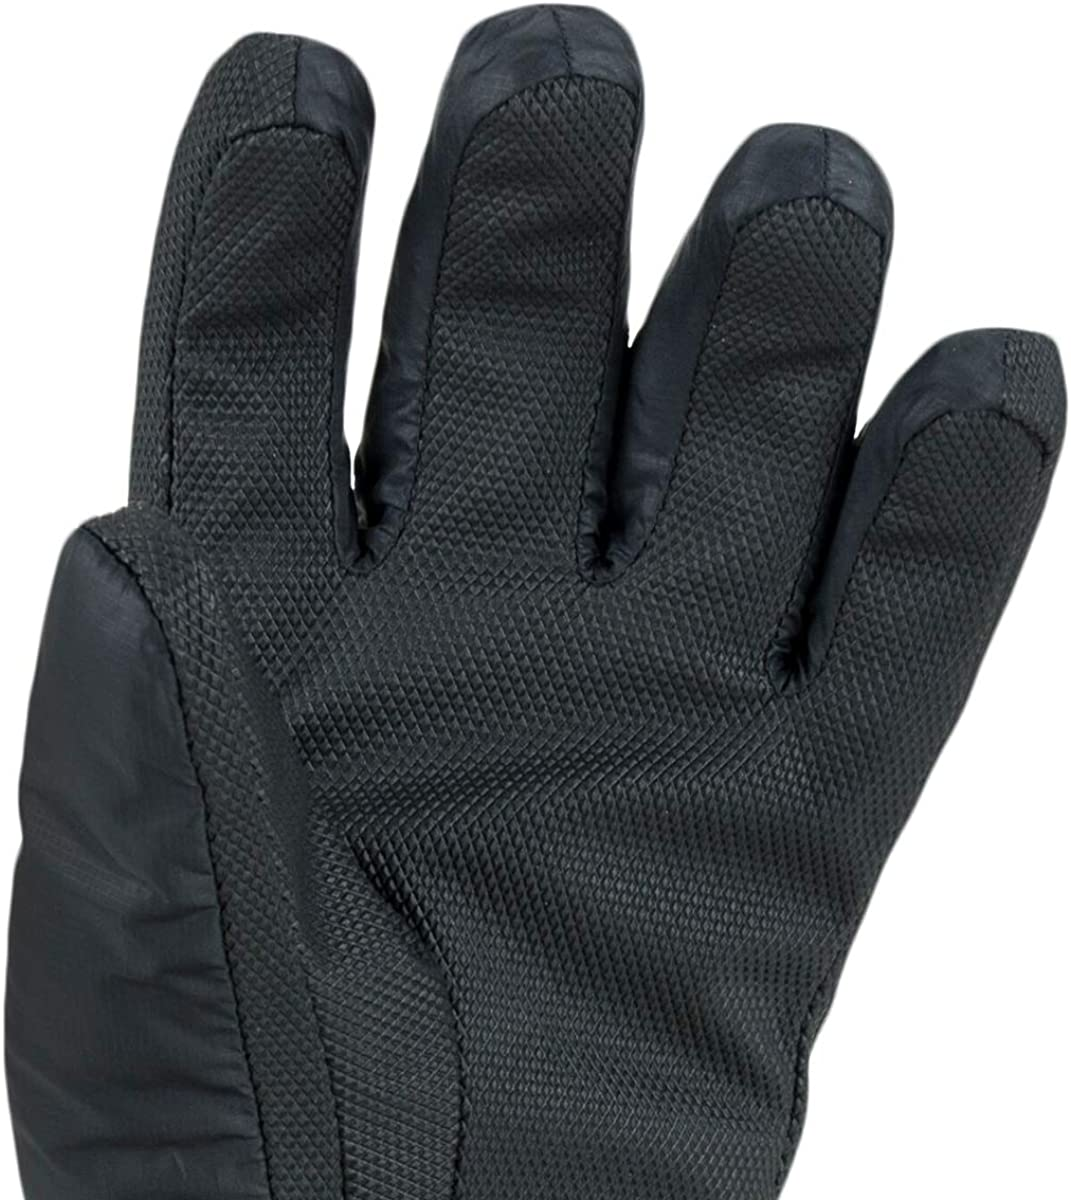 S M Large Black SEALSKINZ Waterproof Extreme Cold Weather Down Gloves